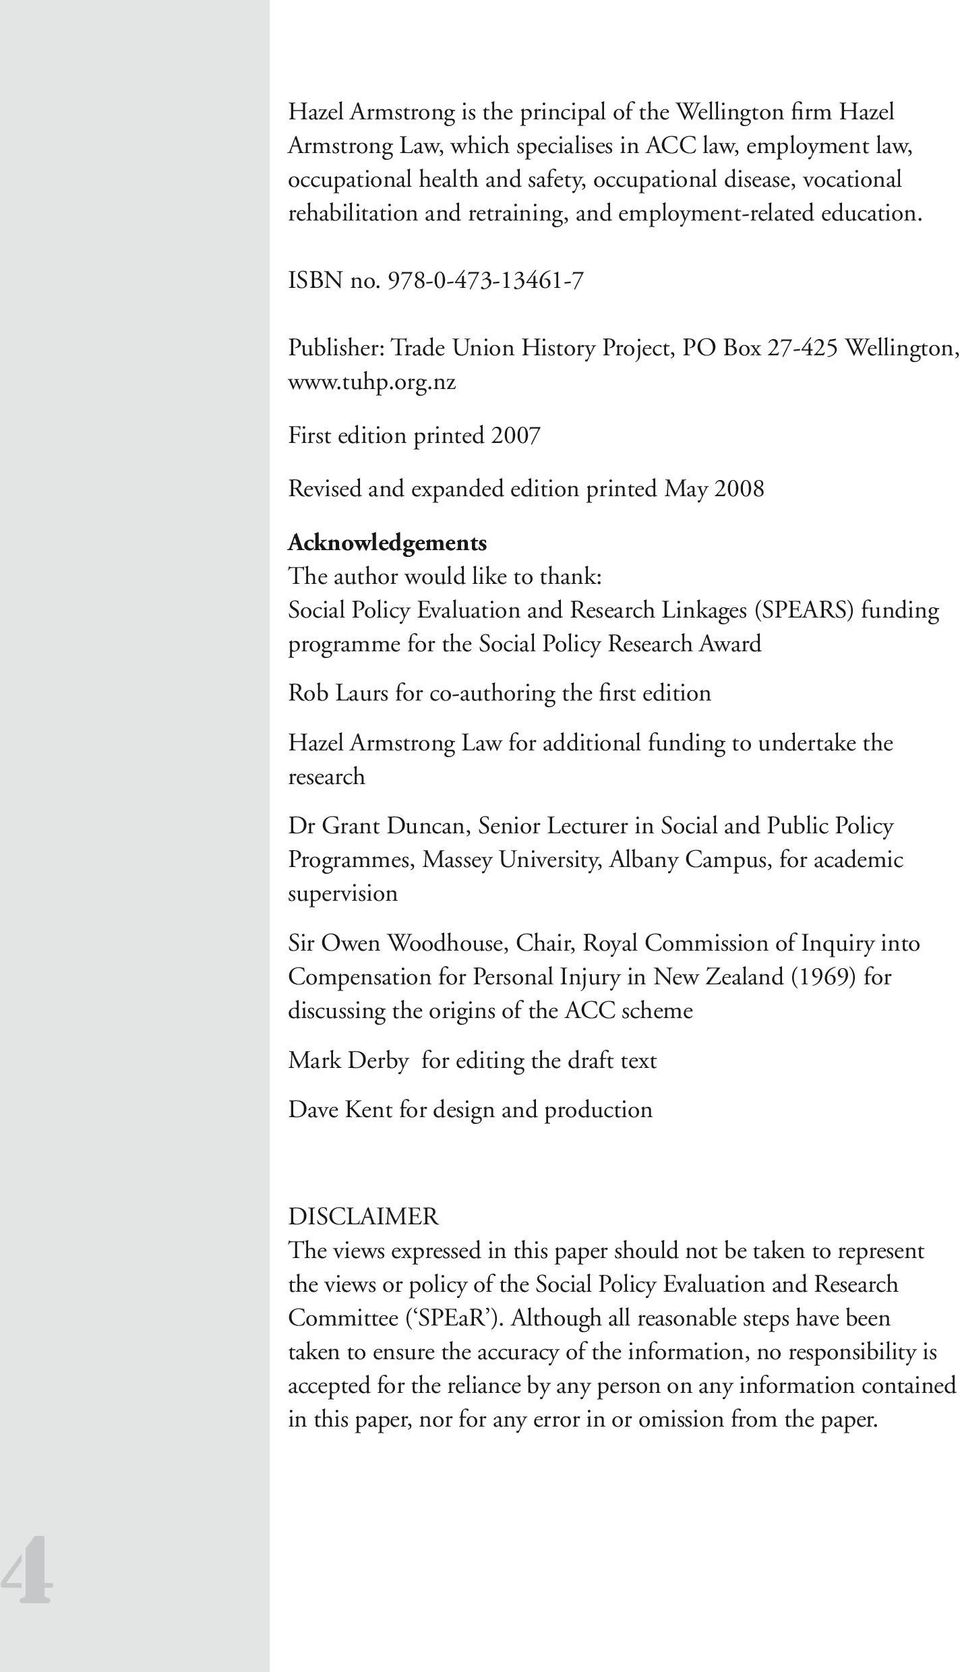 nz First edition printed 2007 Revised and expanded edition printed May 2008 Acknowledgements The author would like to thank: Social Policy Evaluation and Research Linkages (SPEARS) funding programme